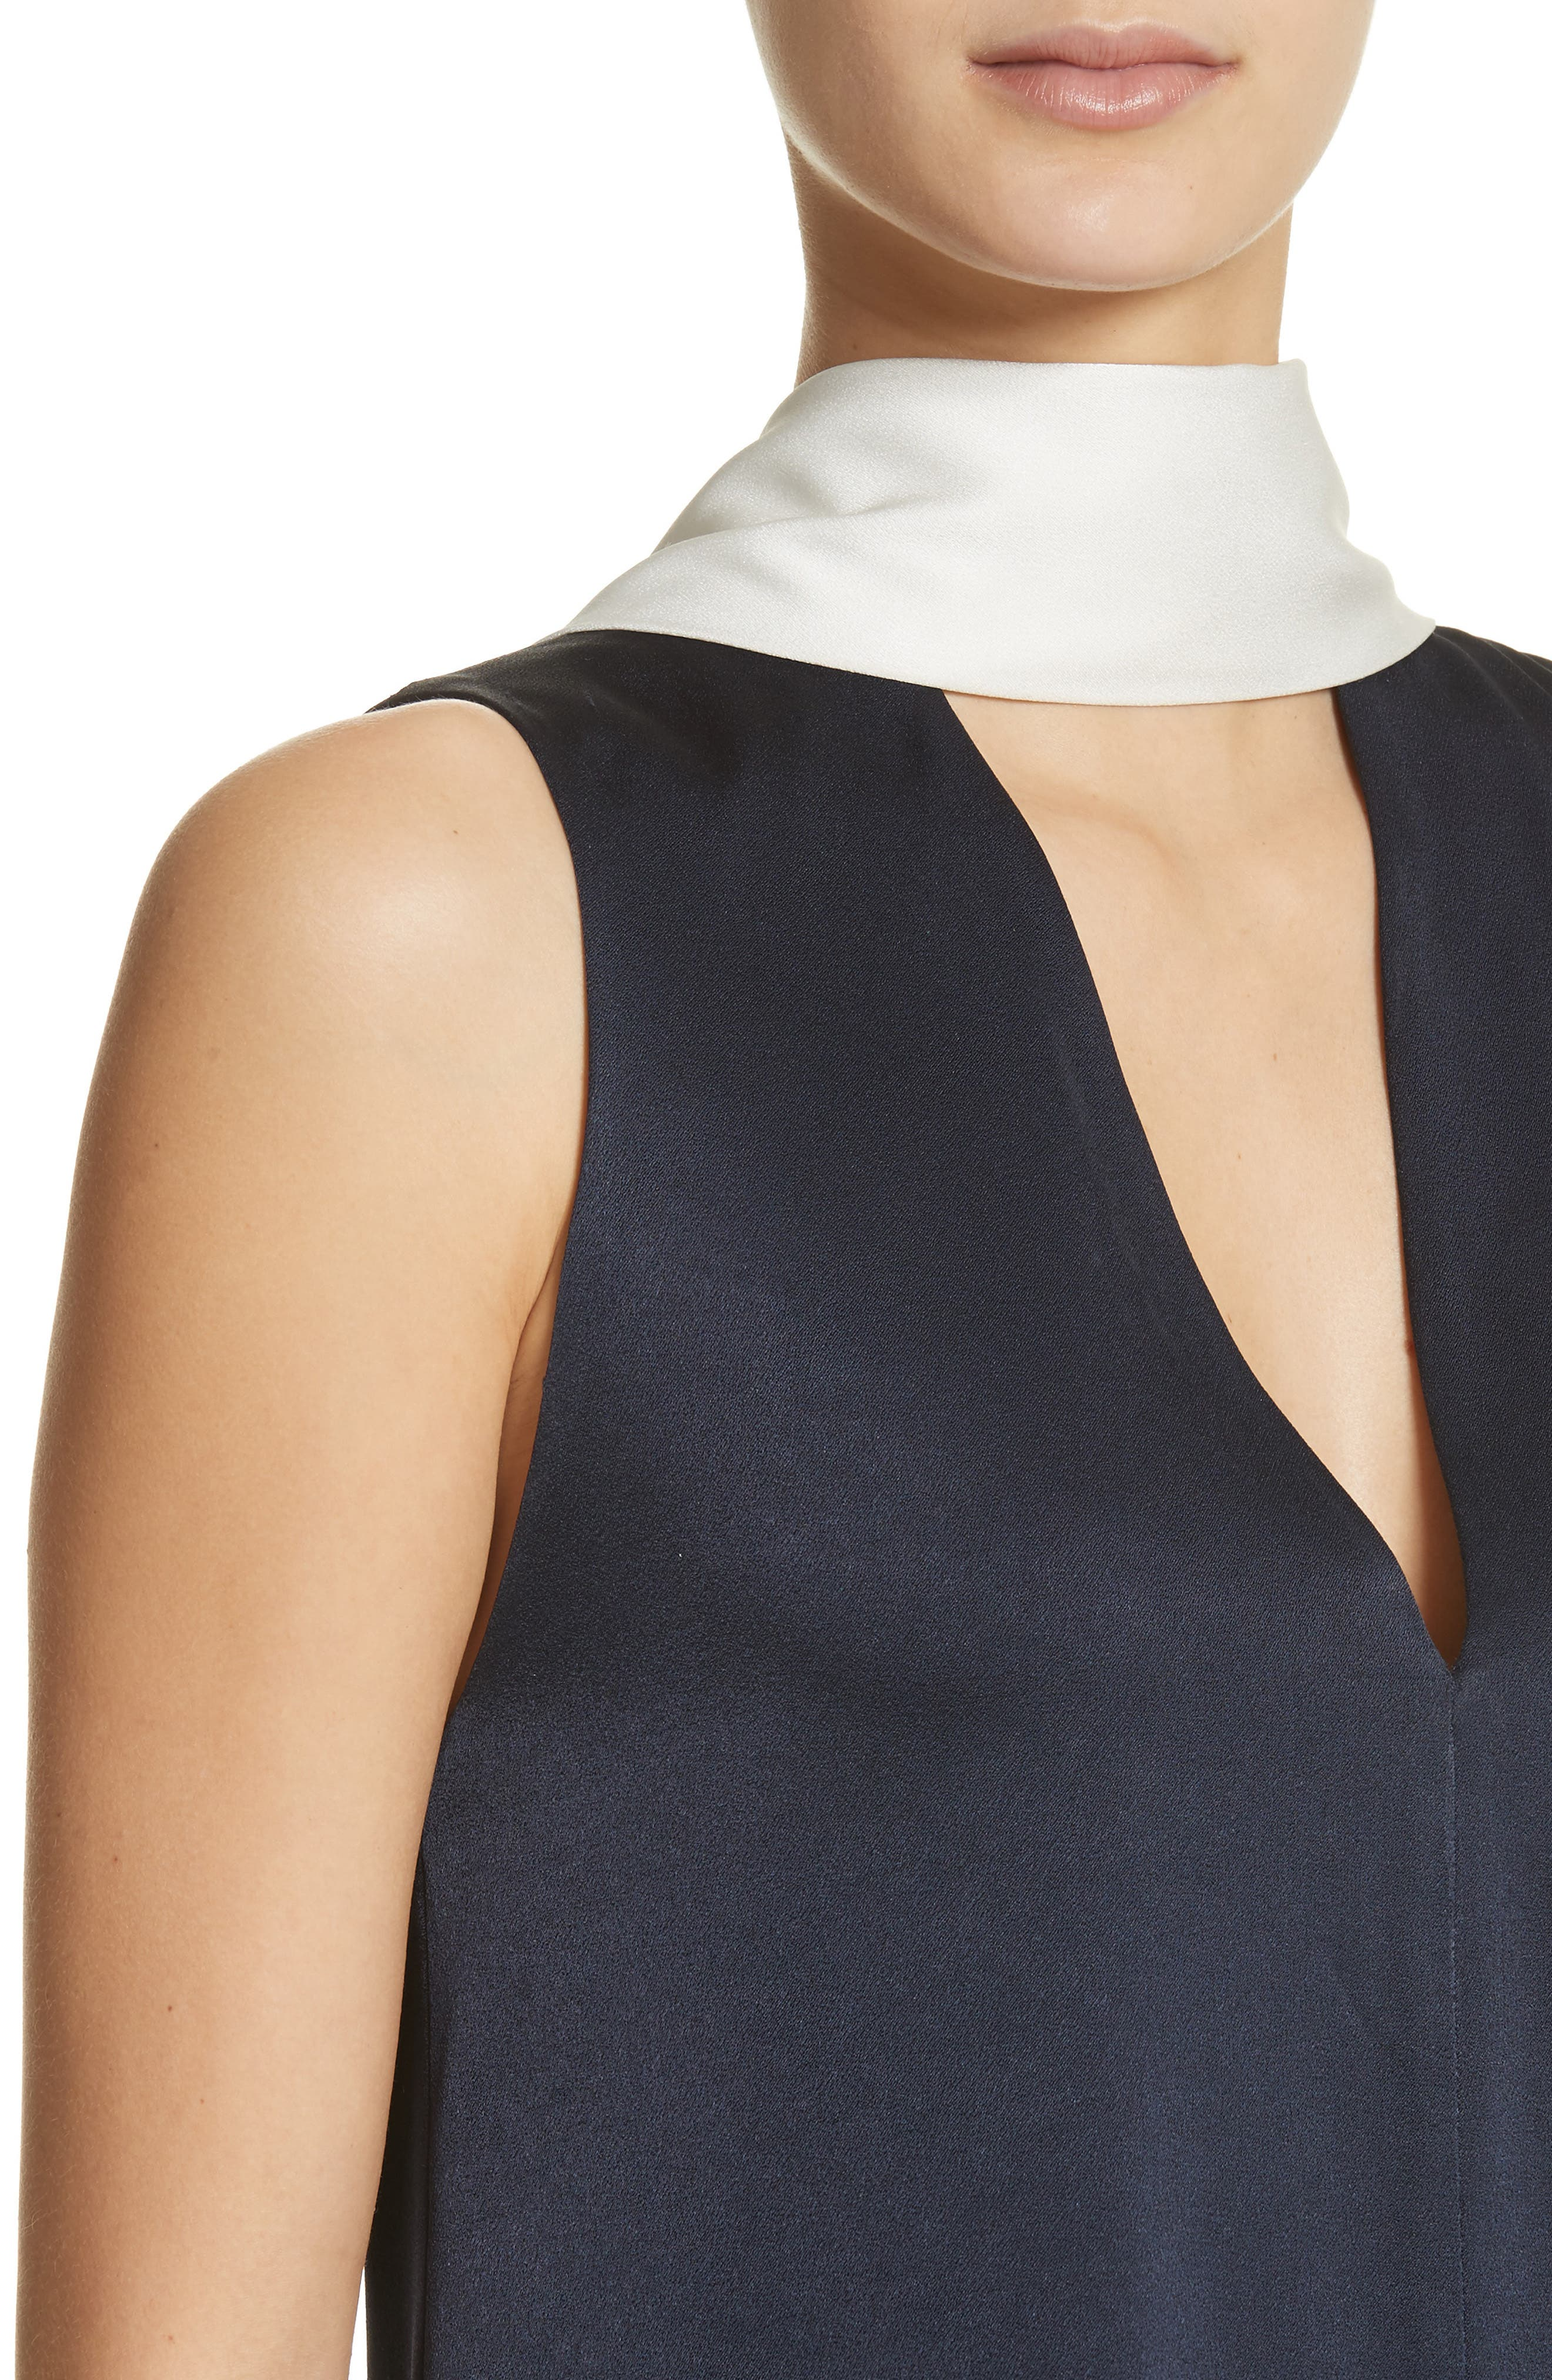 Scarf Detail Satin Back Crepe Top,                             Alternate thumbnail 4, color,                             MIDNIGHT W/ WHITE